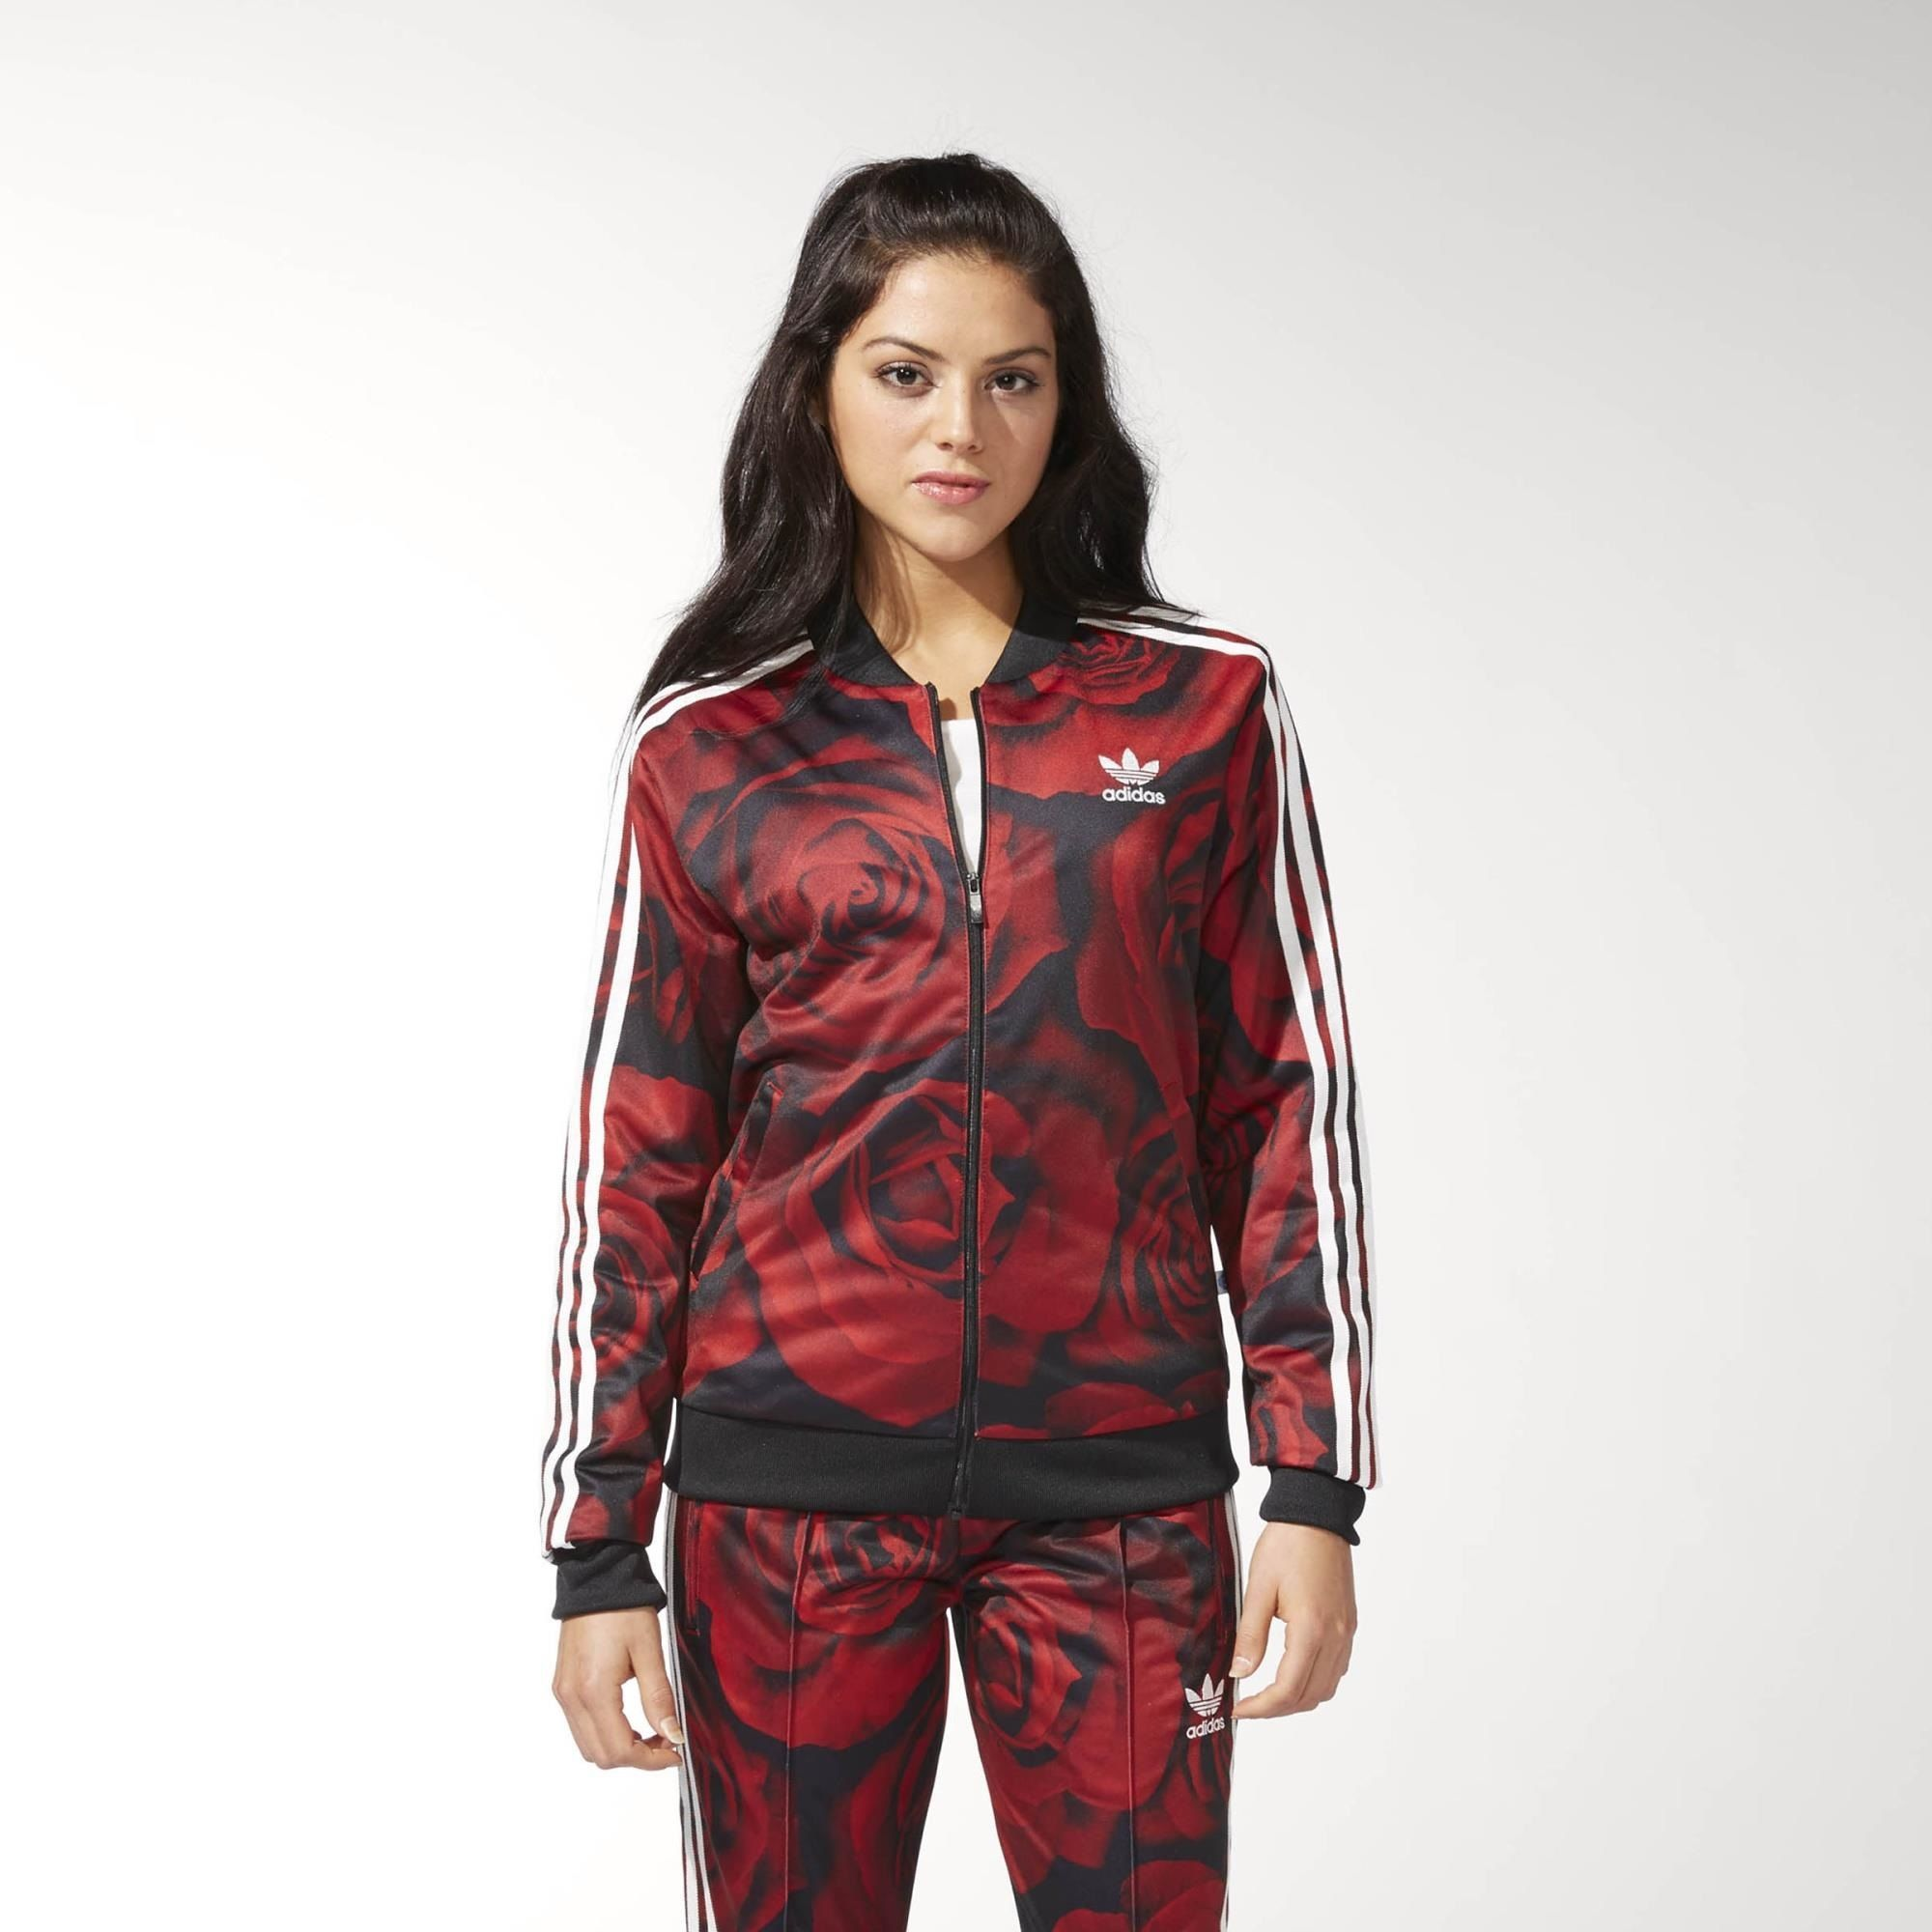 e68e9e1d47de part of the adidas streetwear cool gang - Red Clash Track Jacket ...